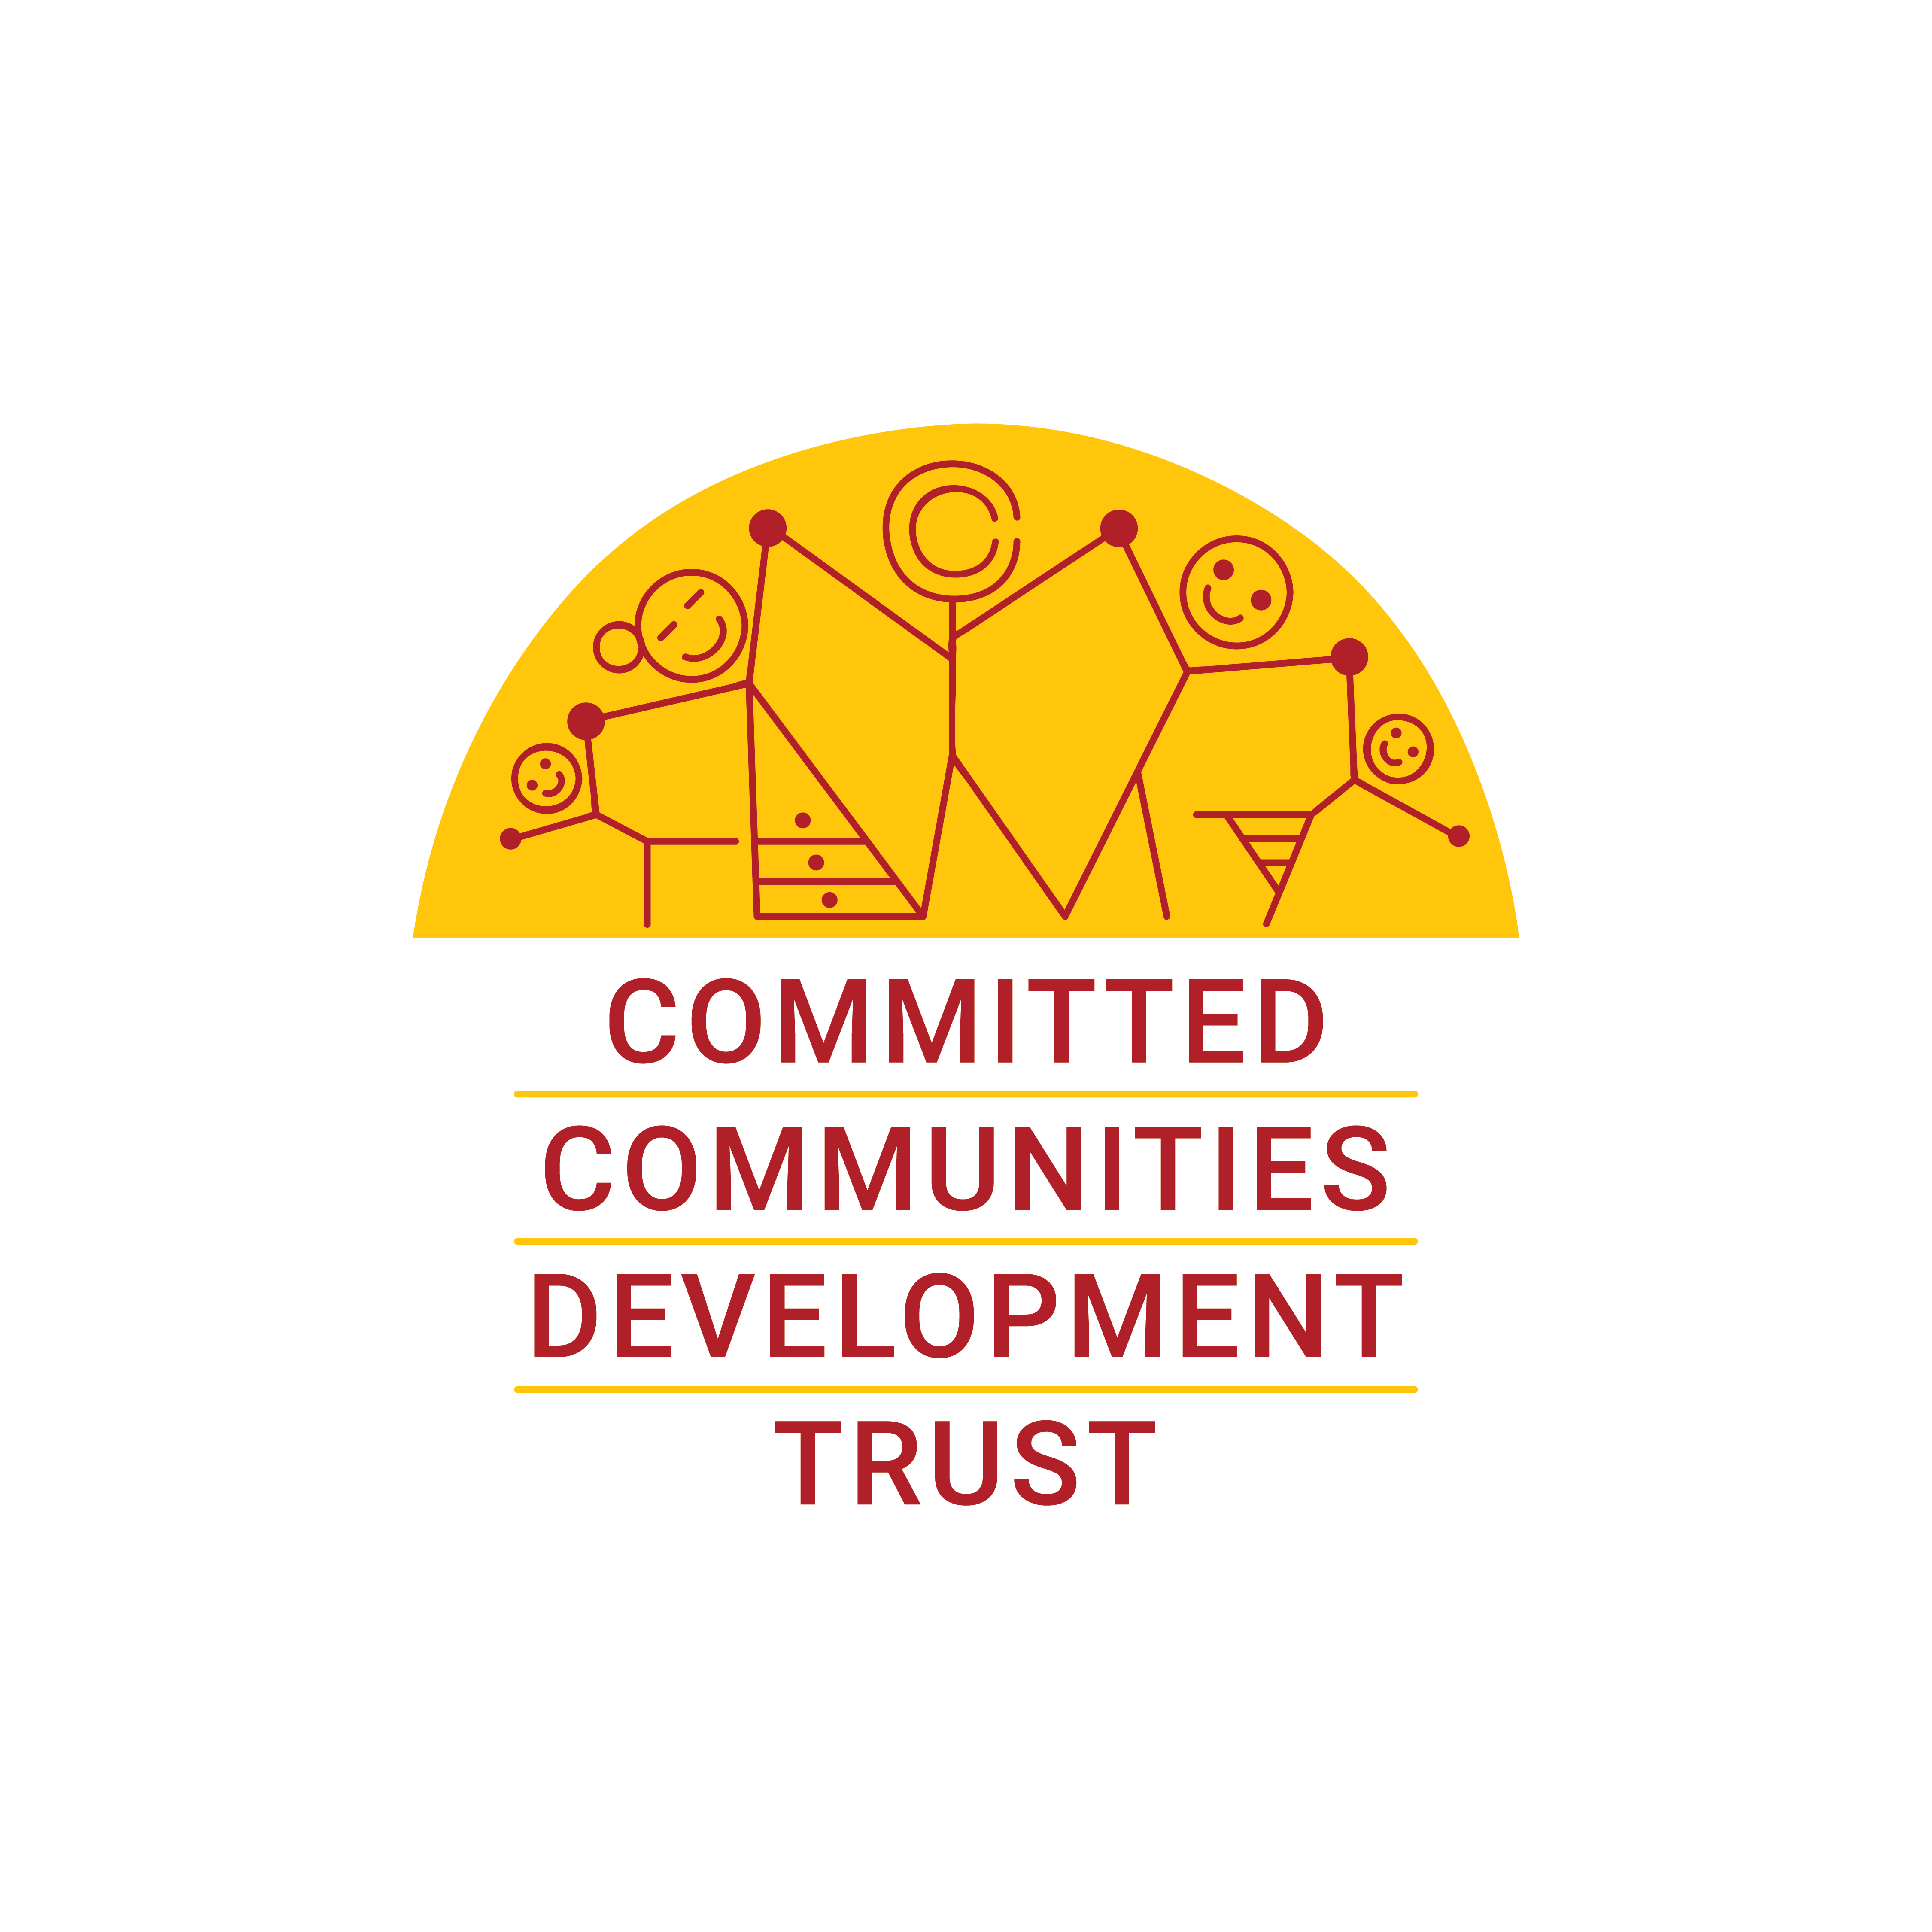 Committed Communties Development Trust